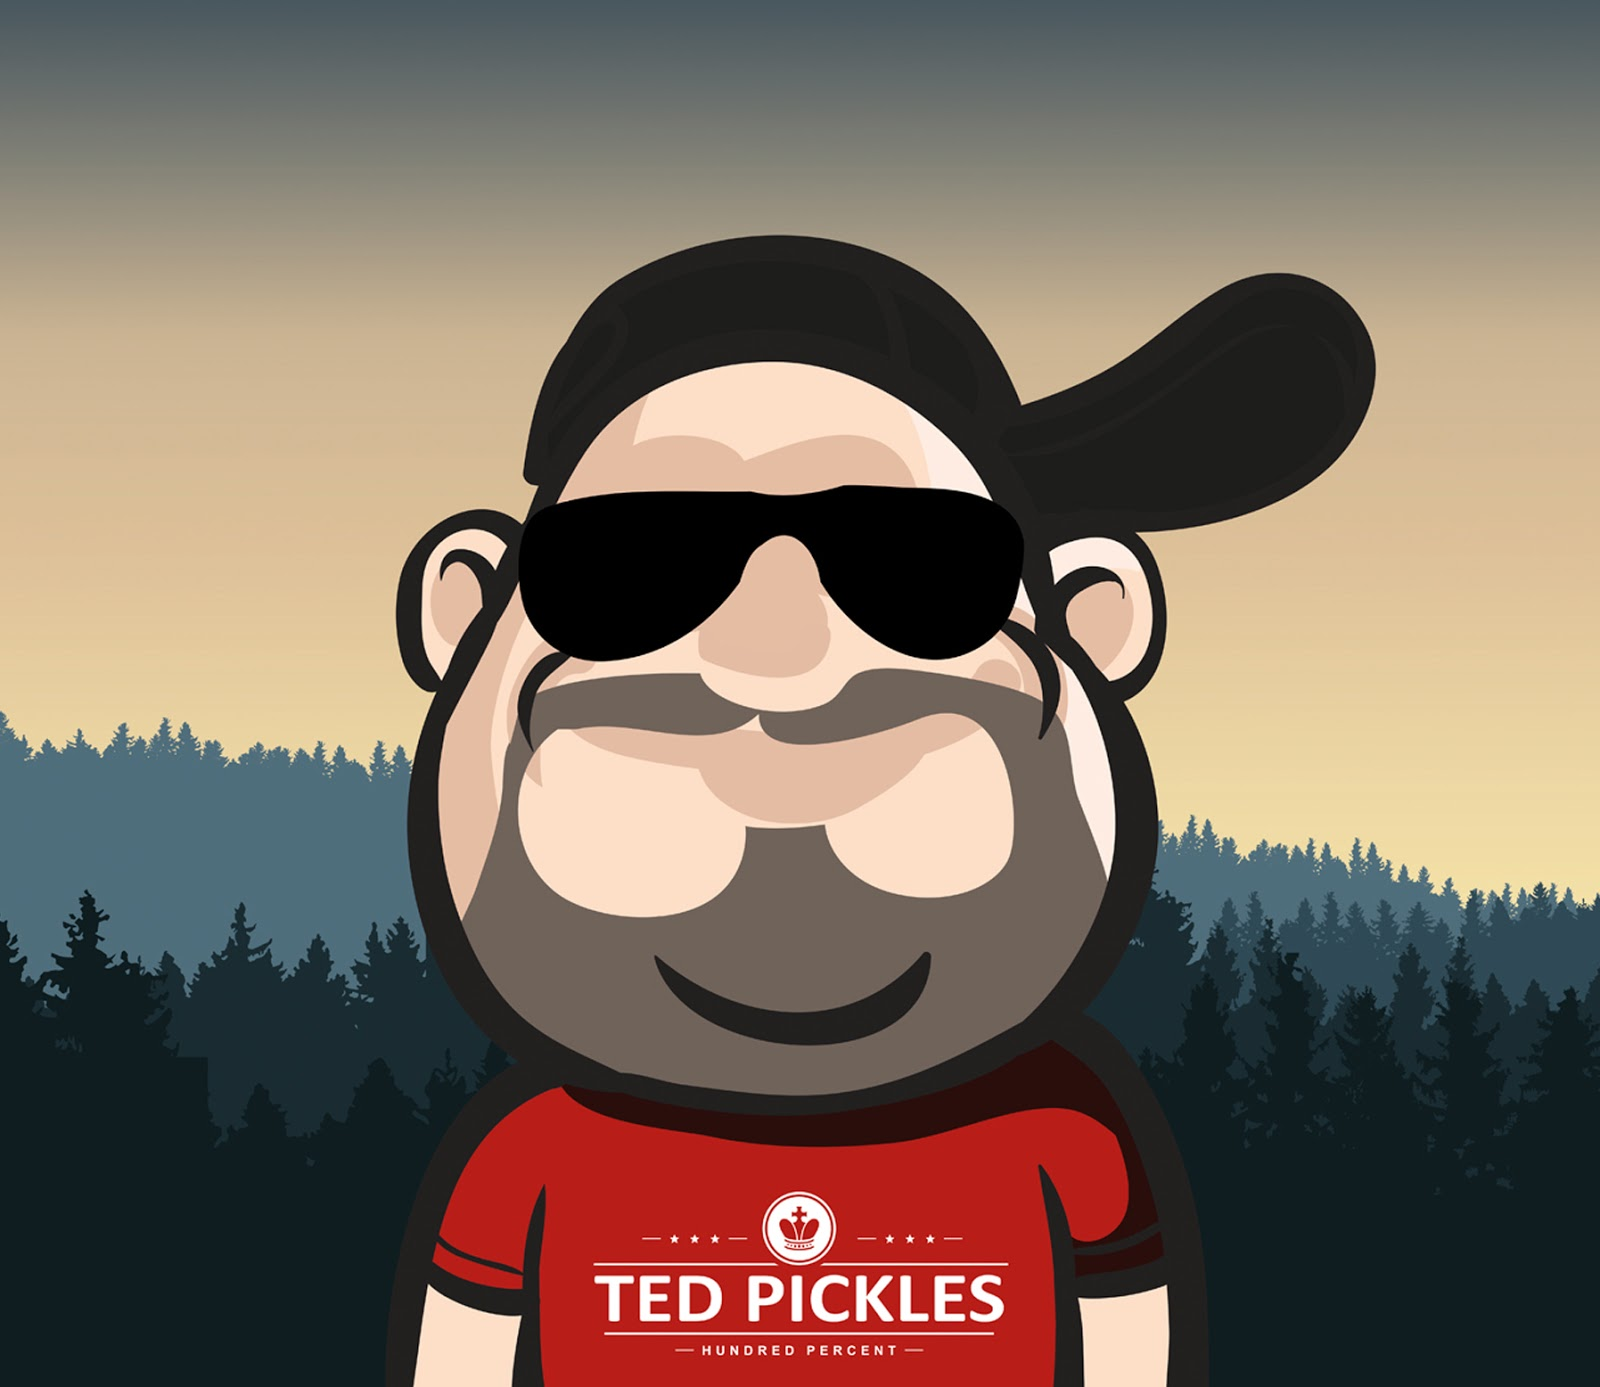 Ted Pickles